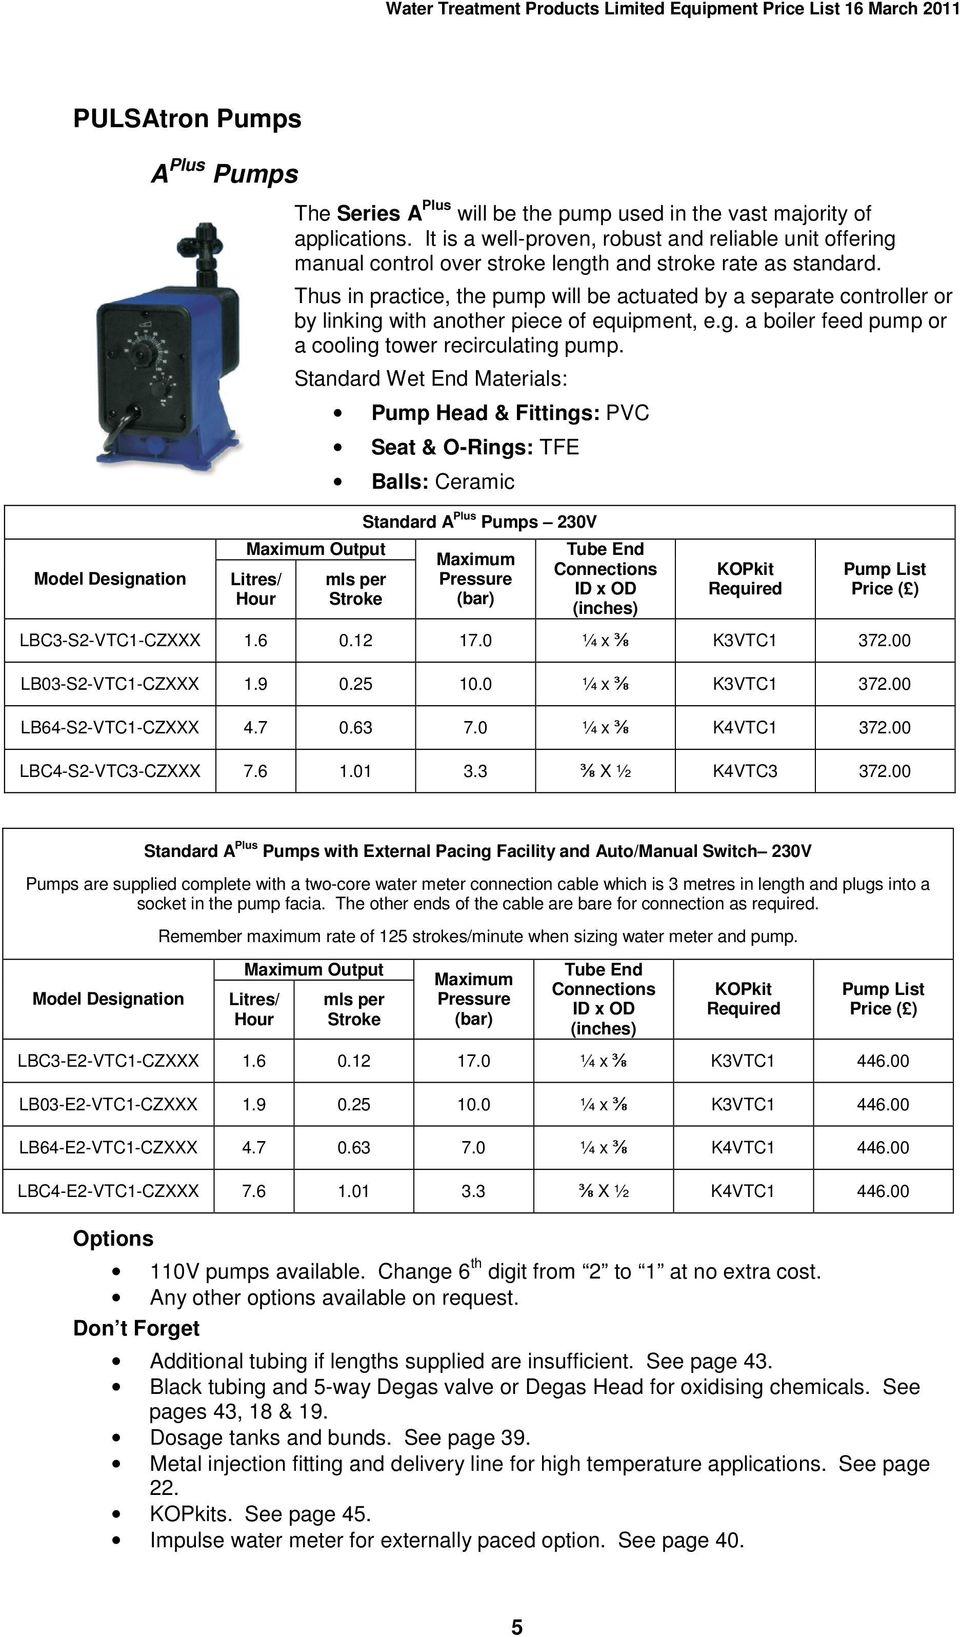 Water Treatment Dosage and Control Equipment Price List - PDF